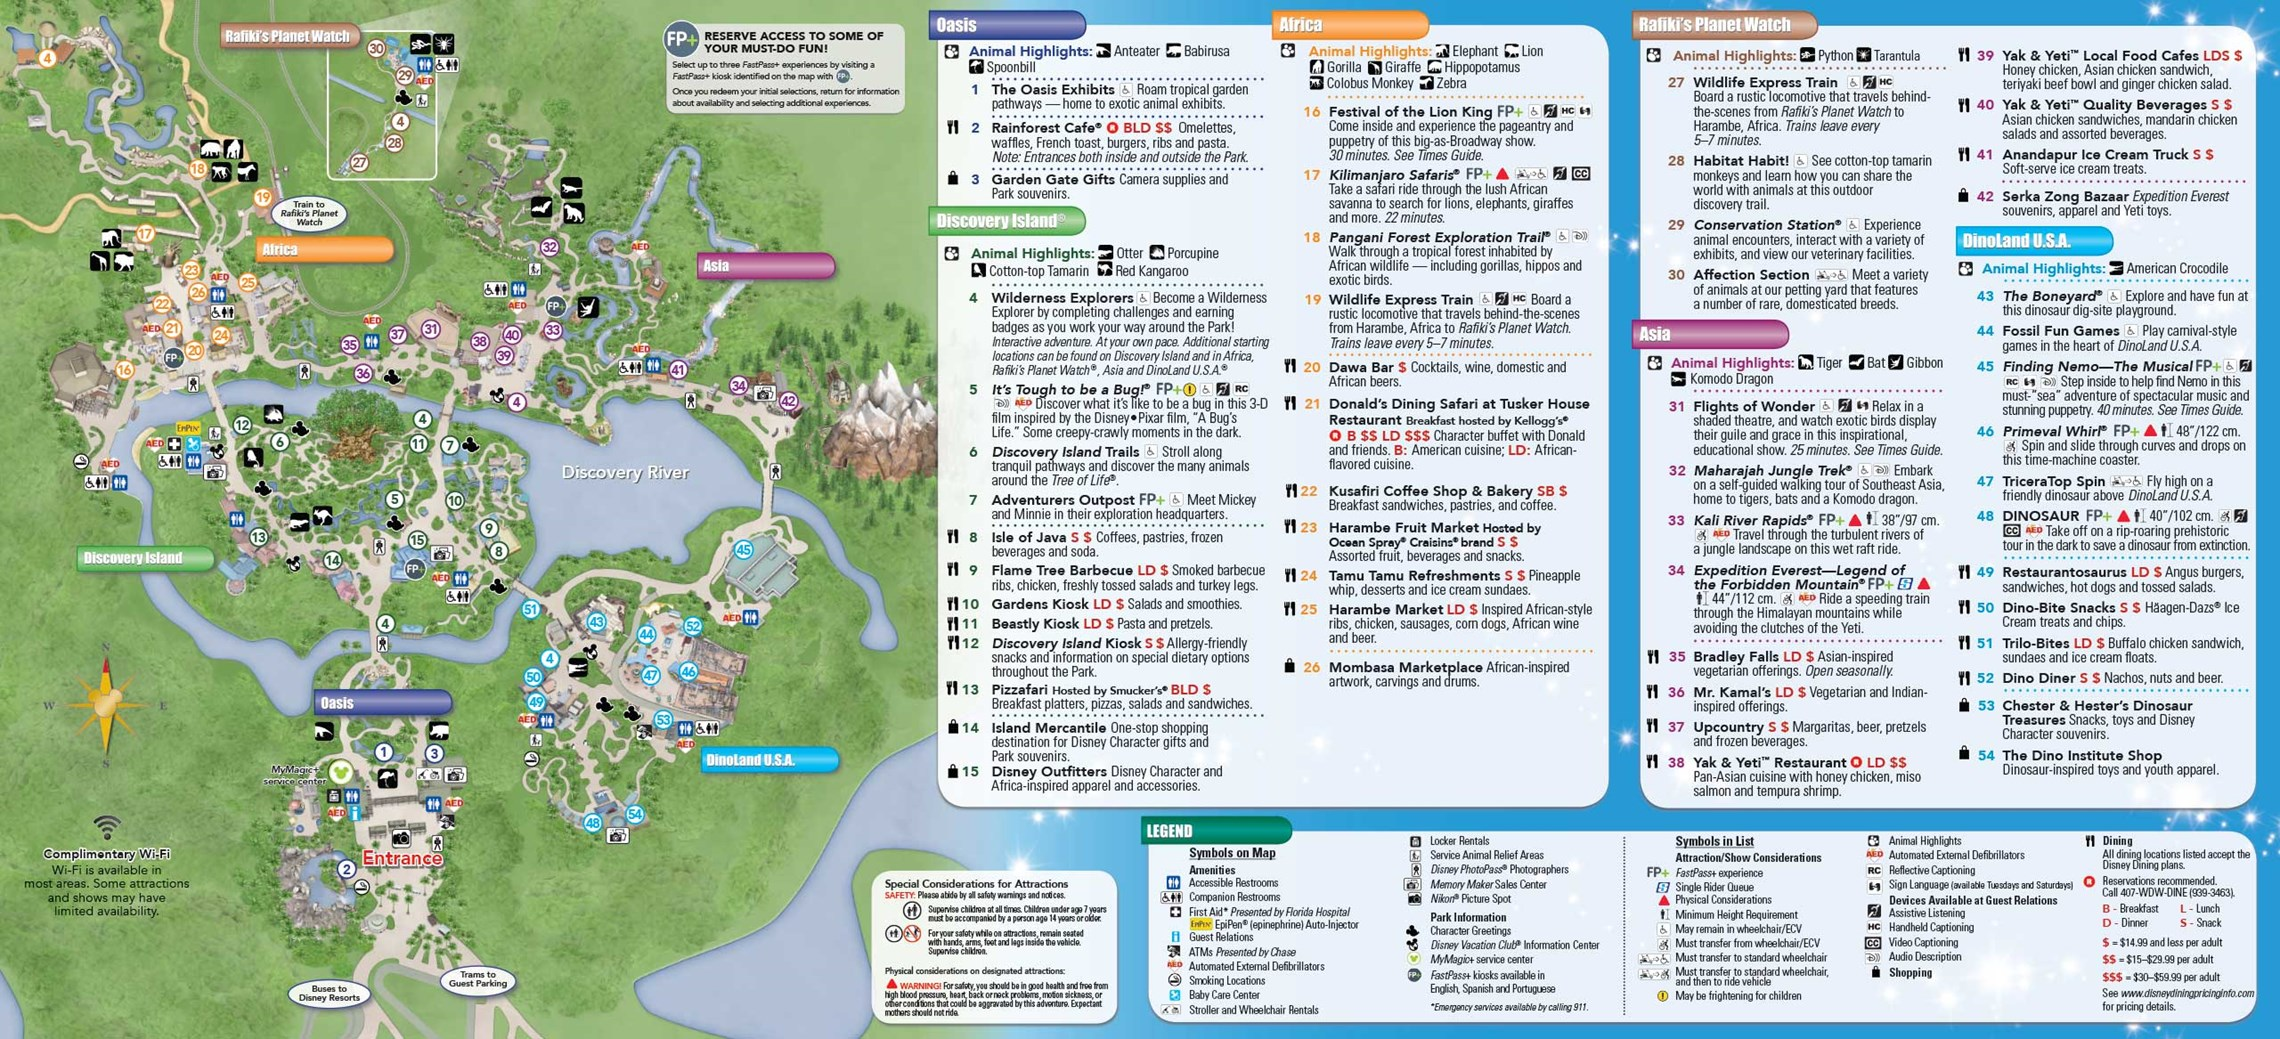 Jun 22, 2015. Disney's Animal Kingdom Guide Map May 2015 - Back ...